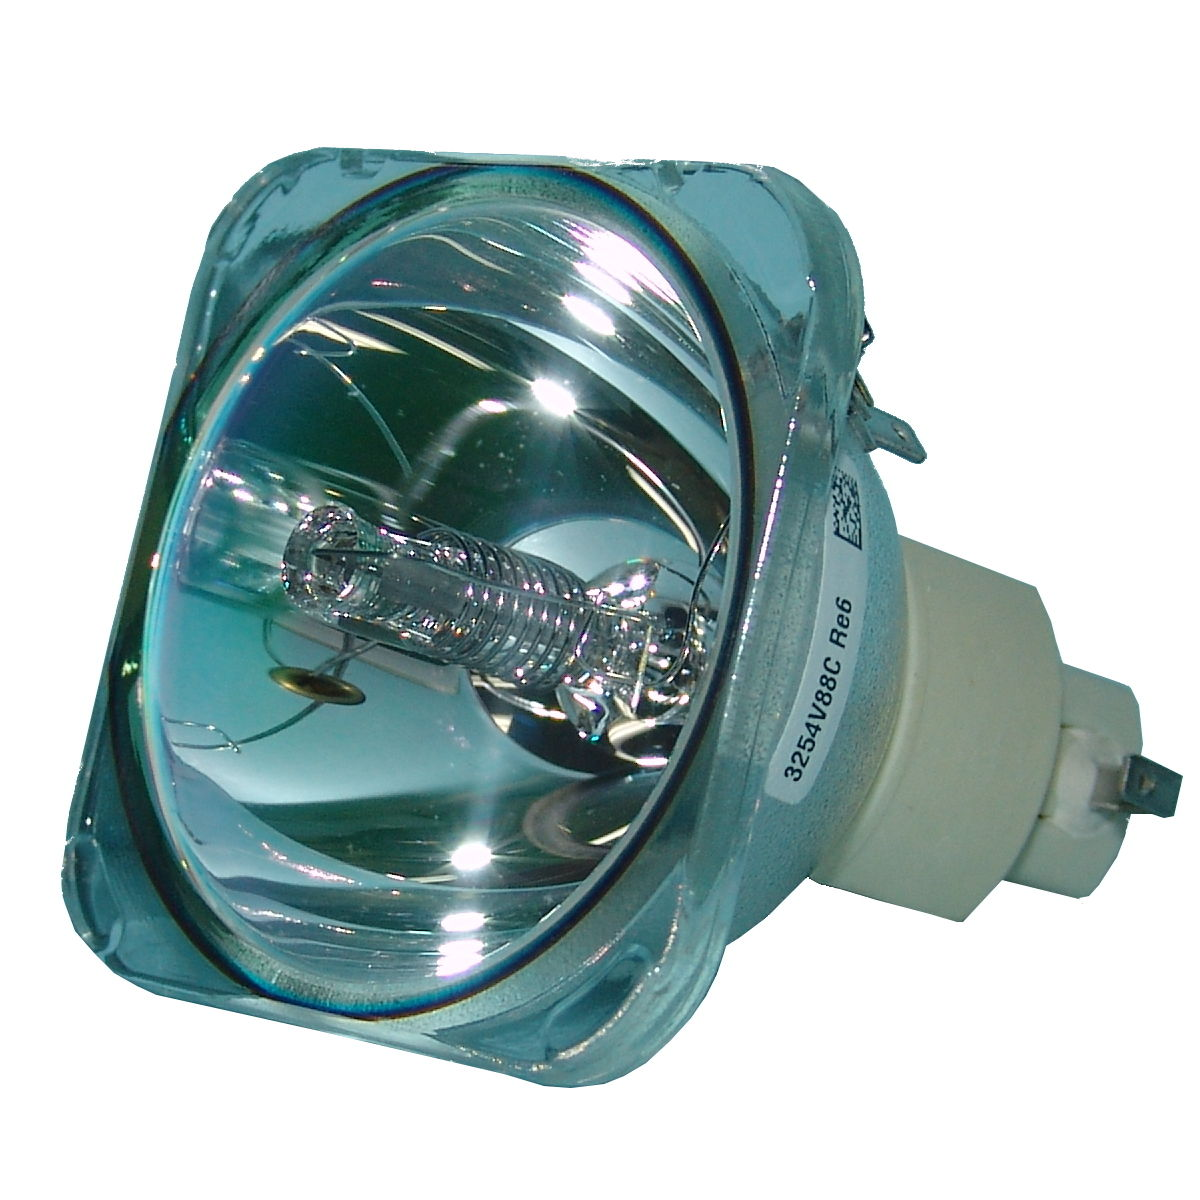 Compatible Bare Bulb BL-FU280A BL-FP280A for OPTOMA TX774 TXR774 TWR1693 Projector Lamp Bulb without housing compatible bare bulb lv lp06 4642a001 for canon lv 7525 lv 7525e lv 7535 lv 7535u projector lamp bulb without housing